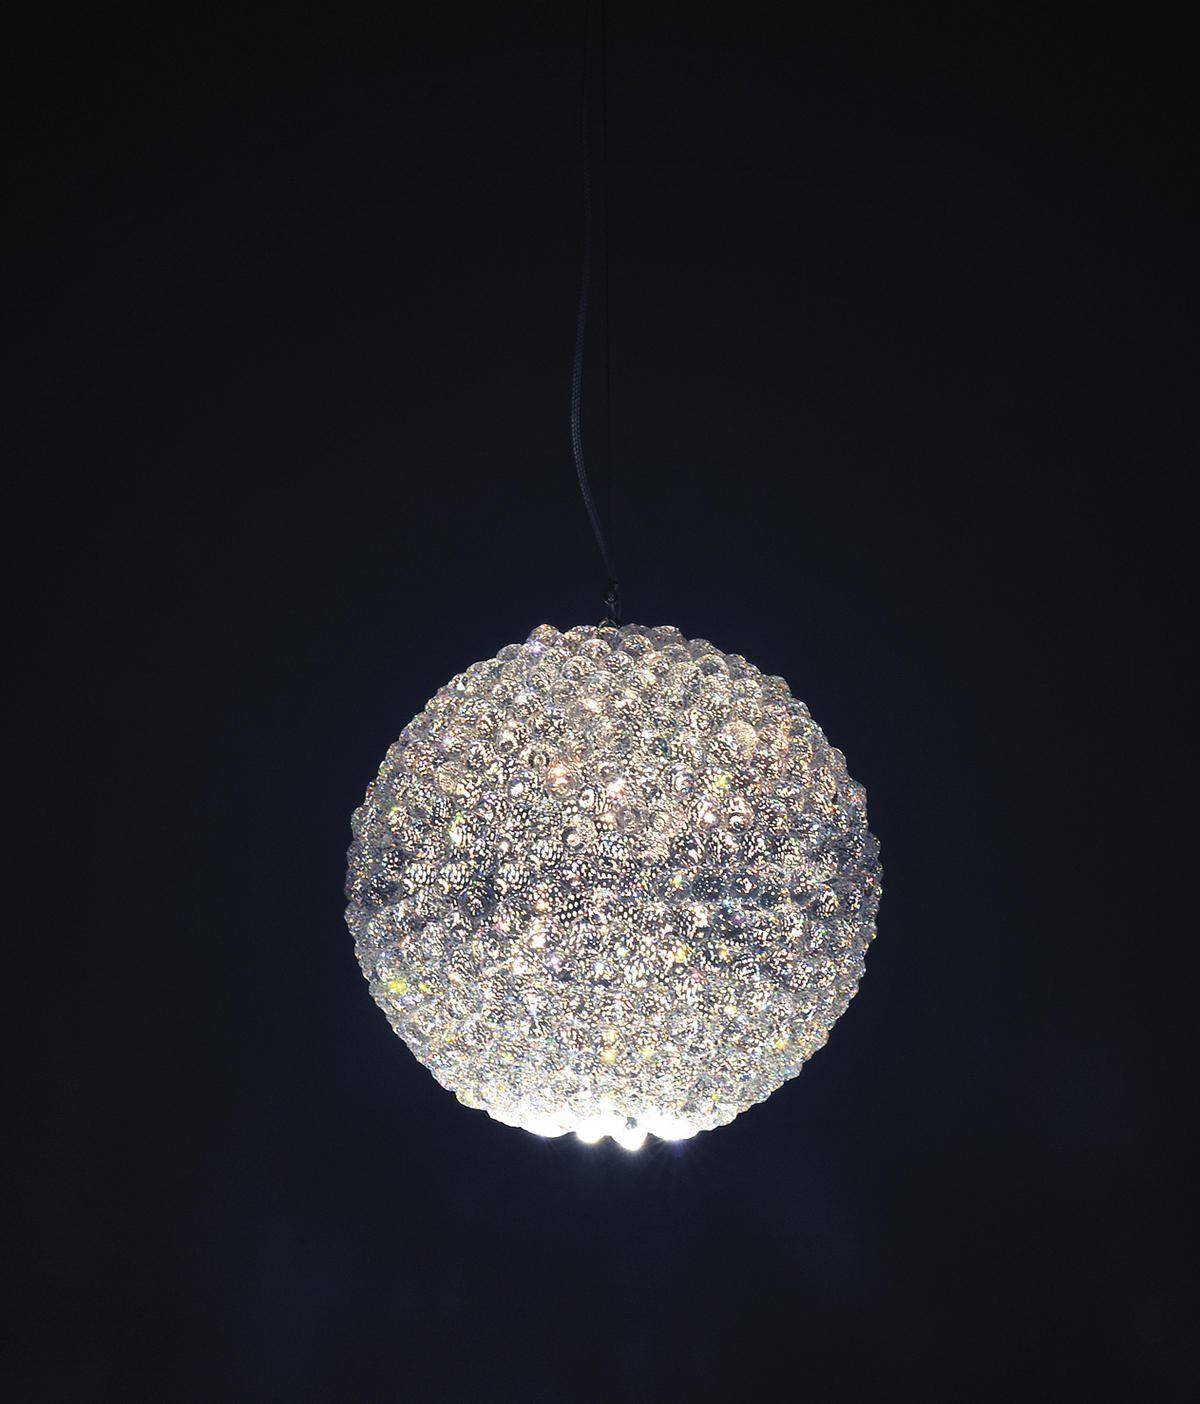 Luna pendant light 19 by HARCO LOOR & LUNA PENDANT LIGHT 19 - General lighting from HARCO LOOR | Architonic azcodes.com